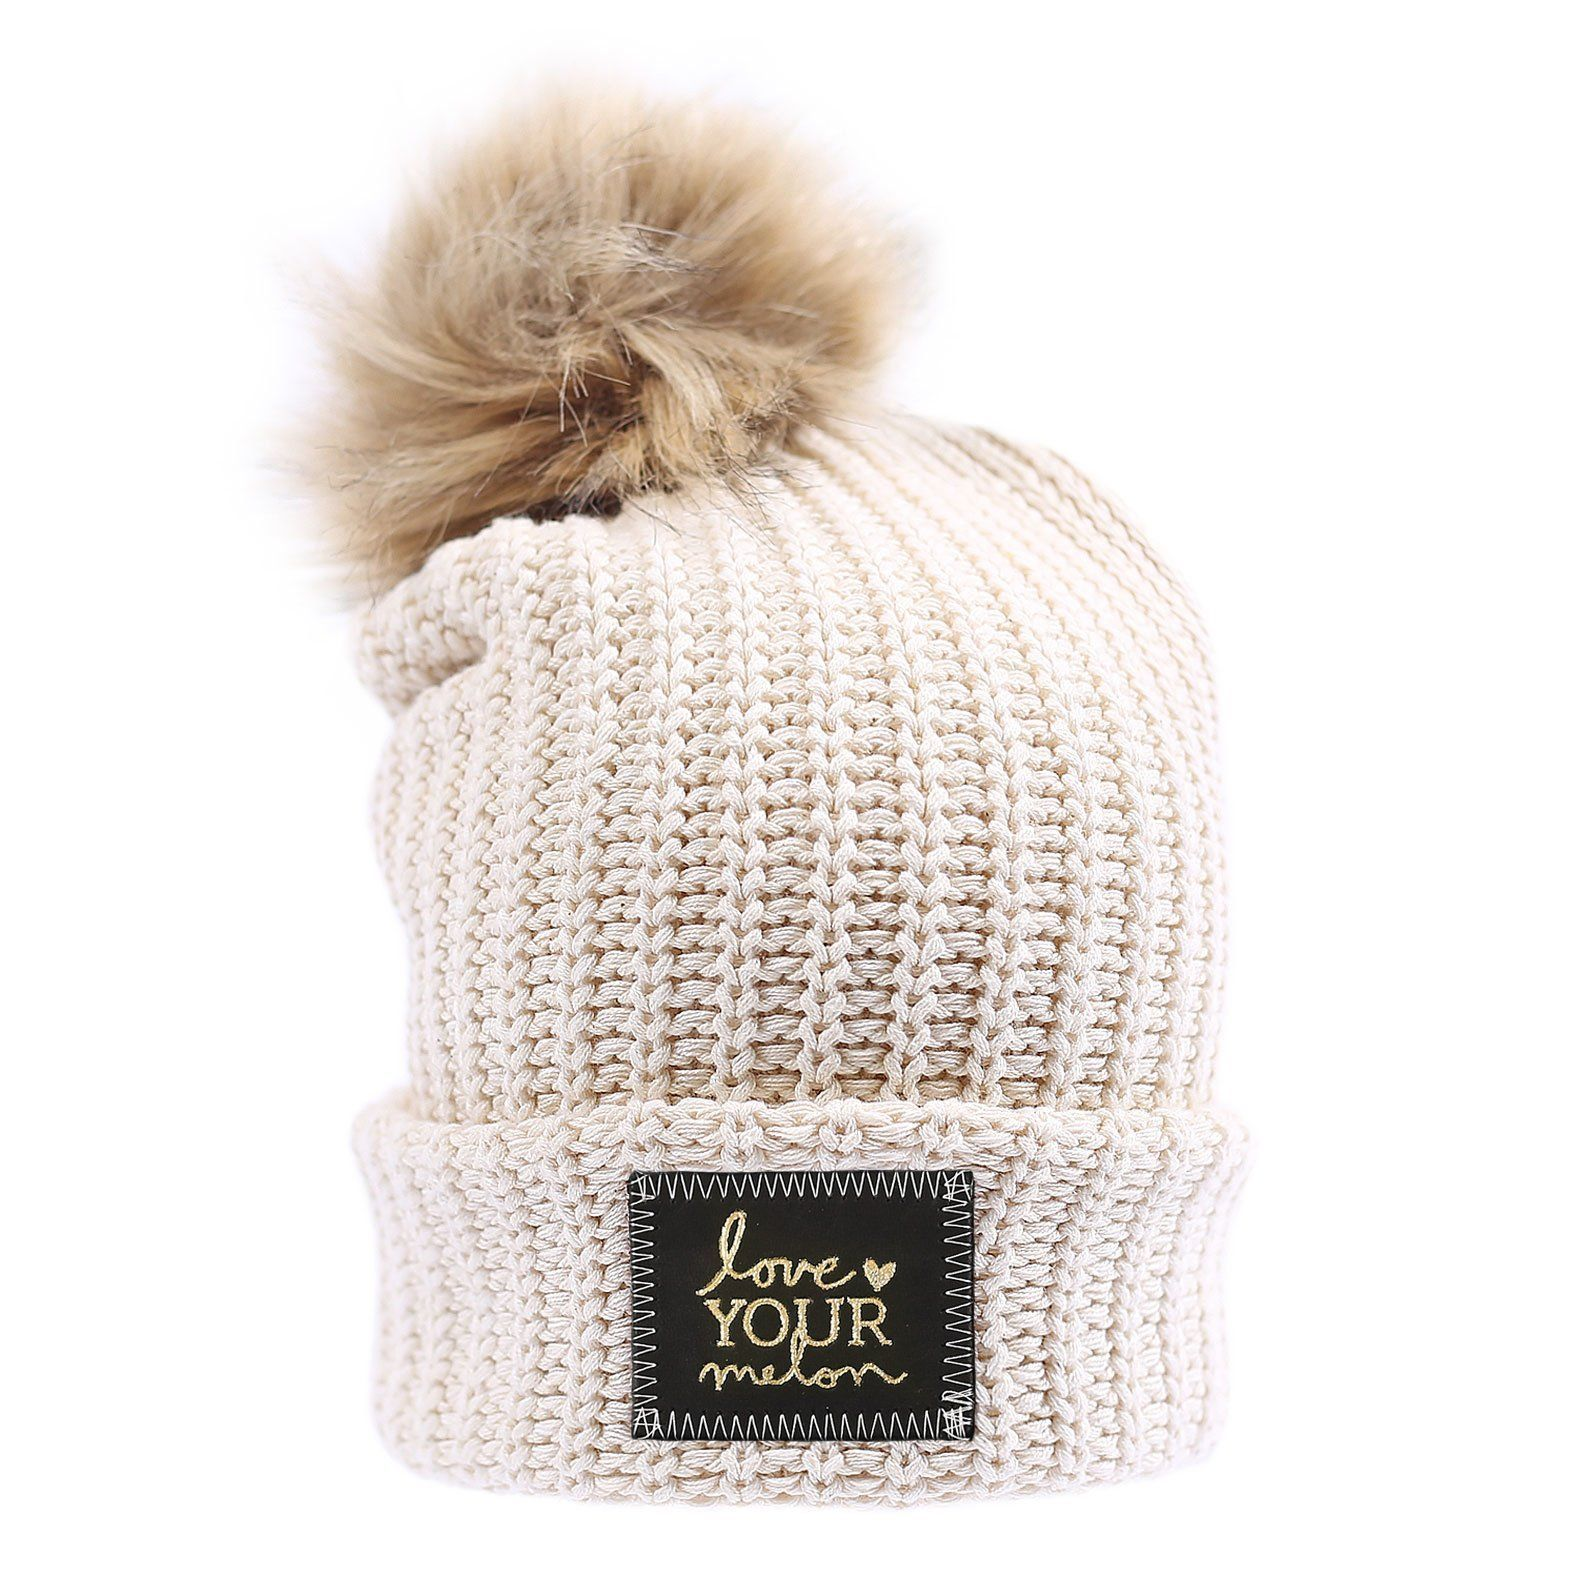 b0dc871be29c0 Love Your Melon White Speckled Gold Foil Cuffed Pom Beanie